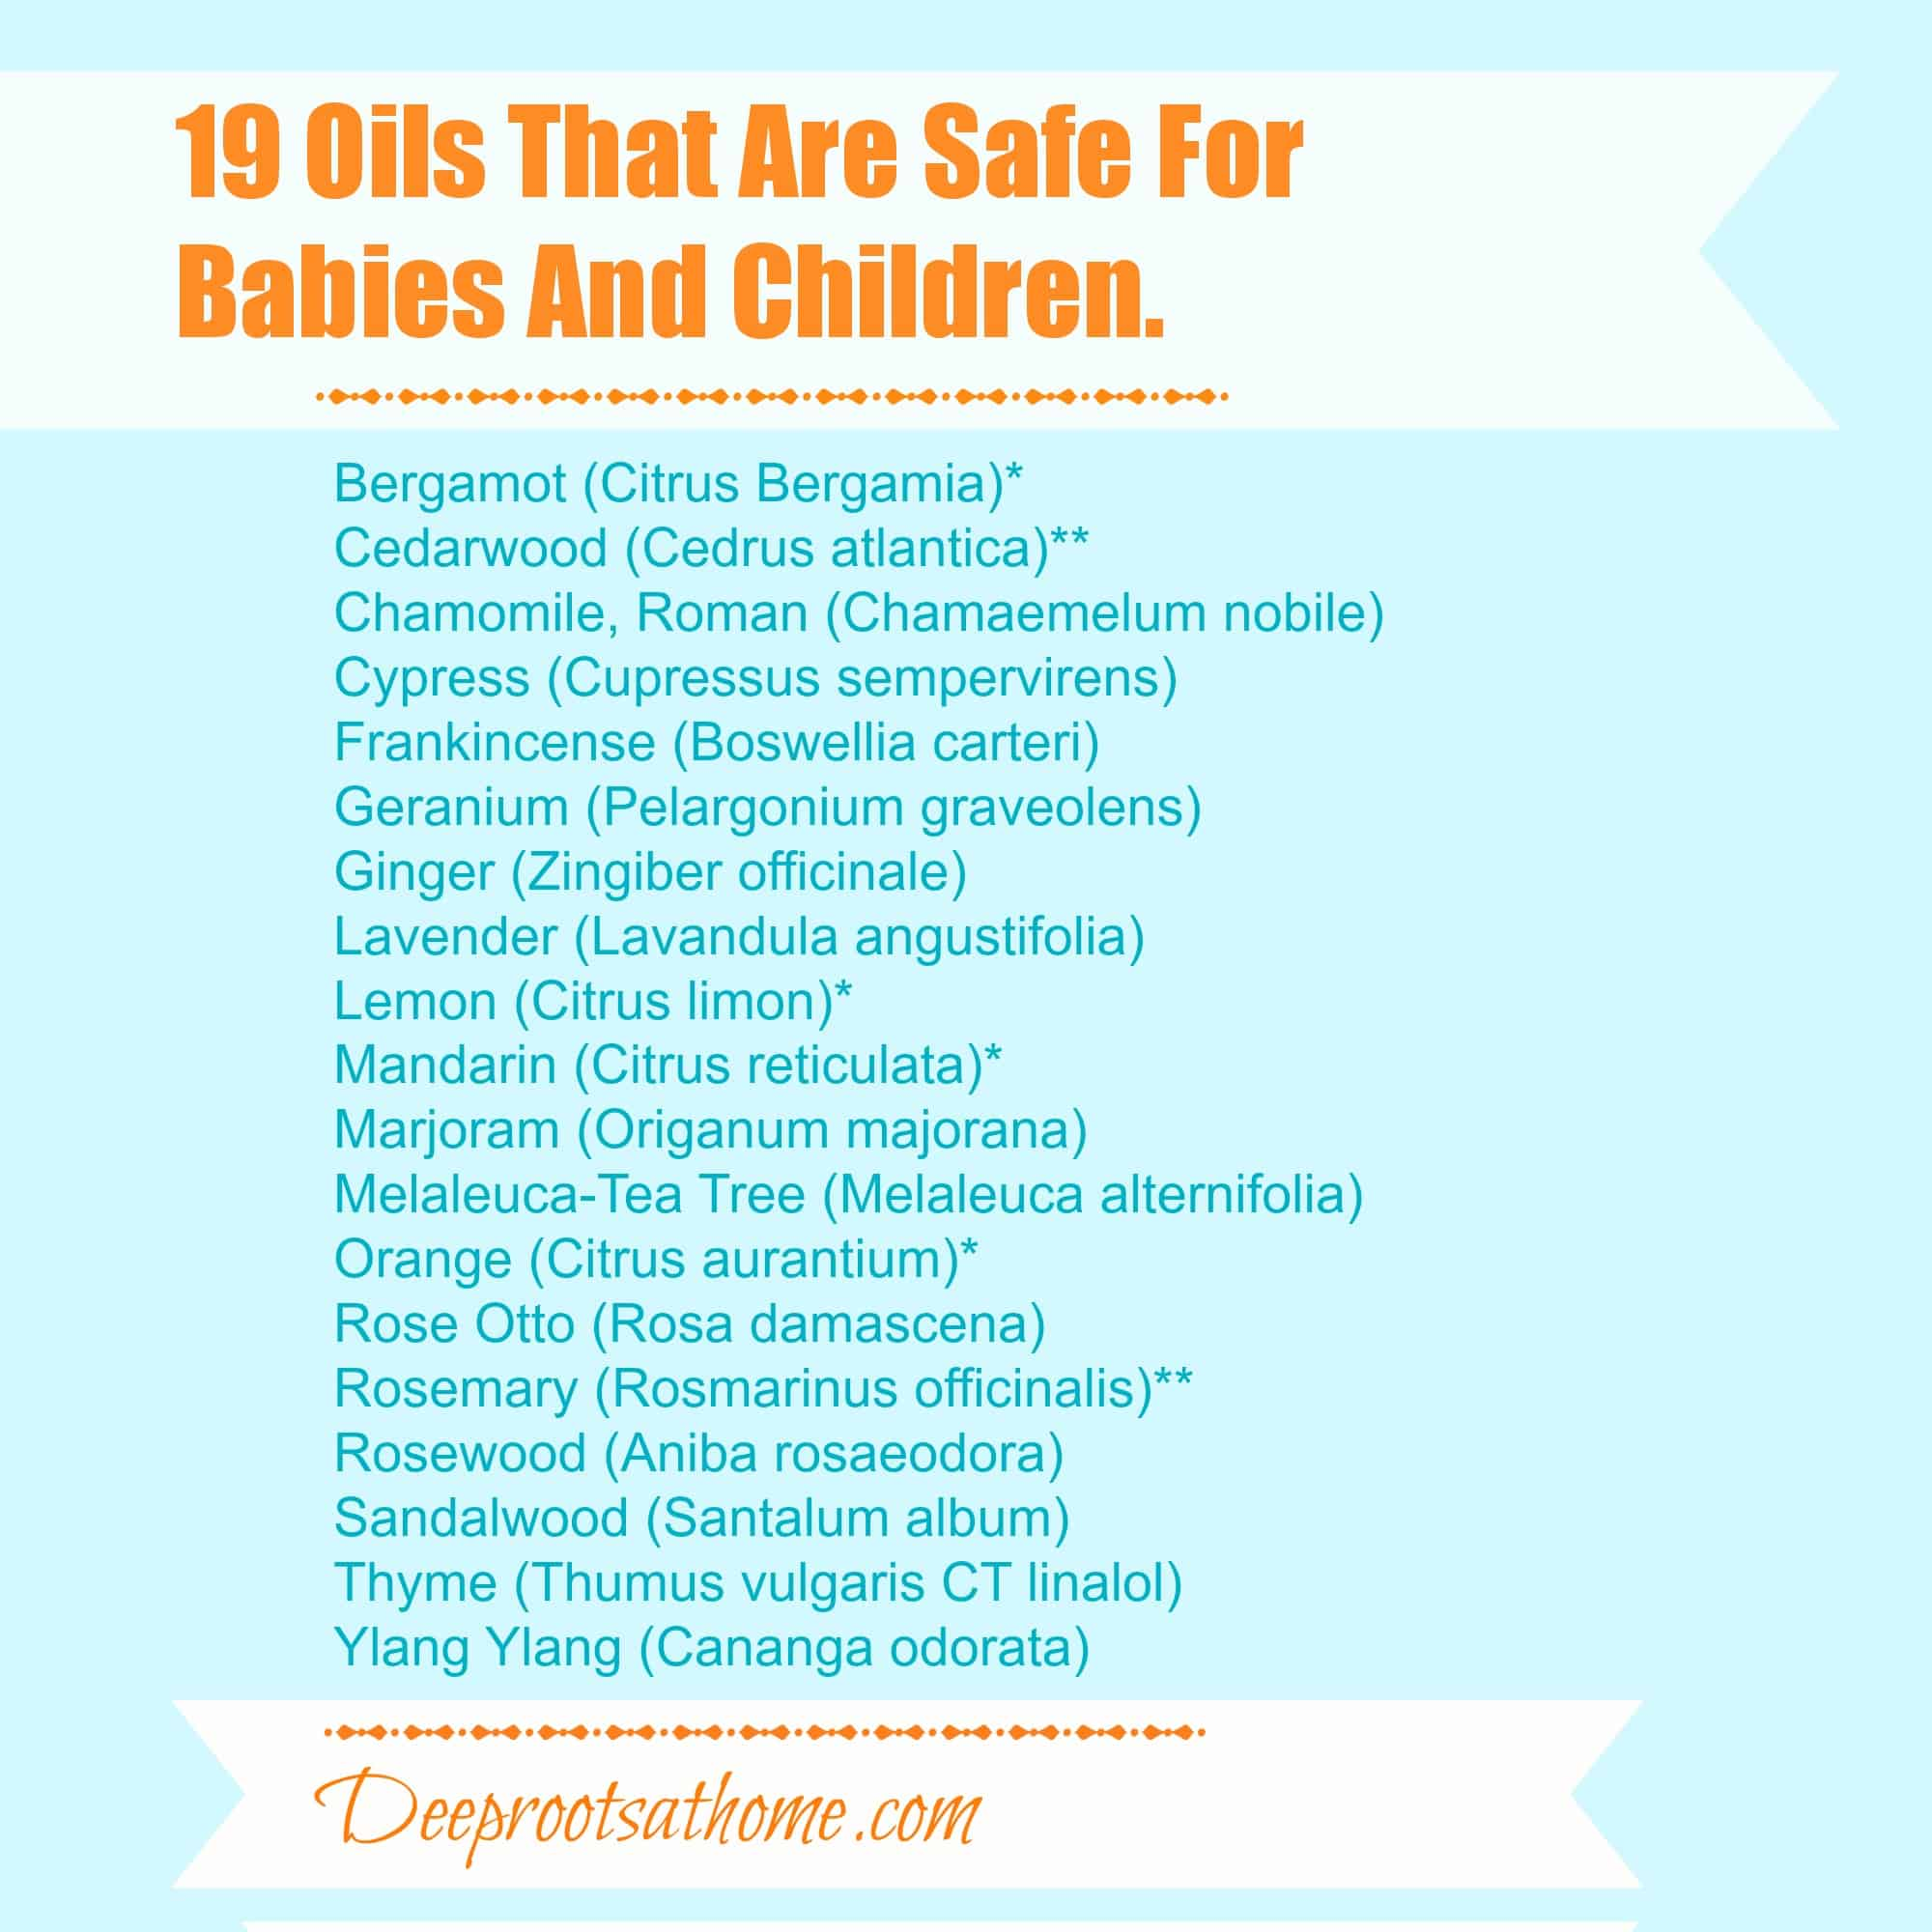 A list of 19 essential oils that are safe for babies and kids